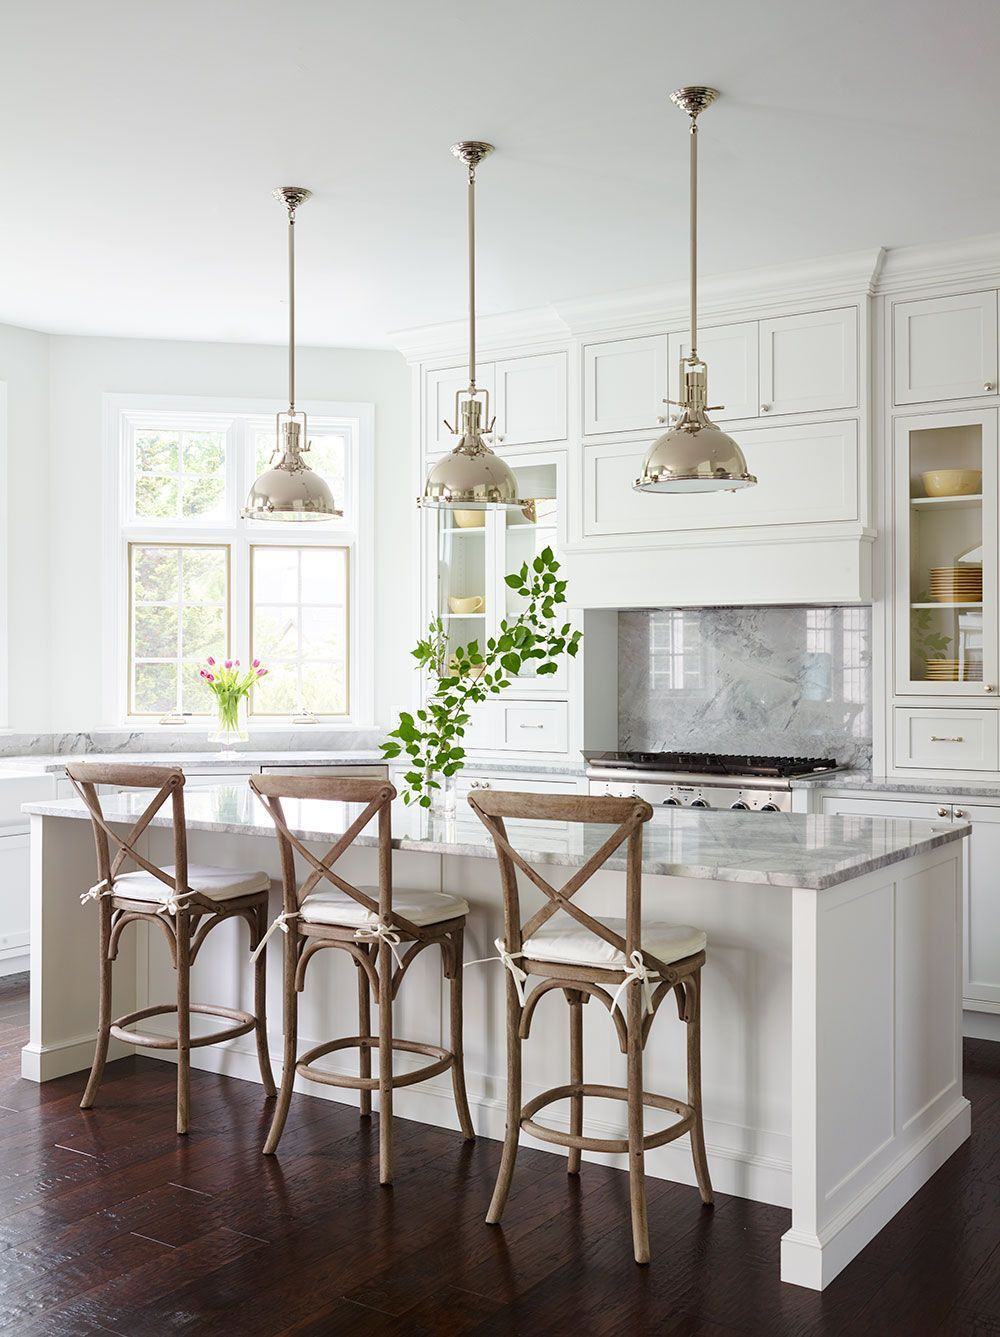 Best Of Restoration Hardware Farmhouse Kitchen Island The Most Awesome And Beautiful Restoration Hardware Farmhouse Kitchen Isla Hamptons Decor Cabinet Dekor